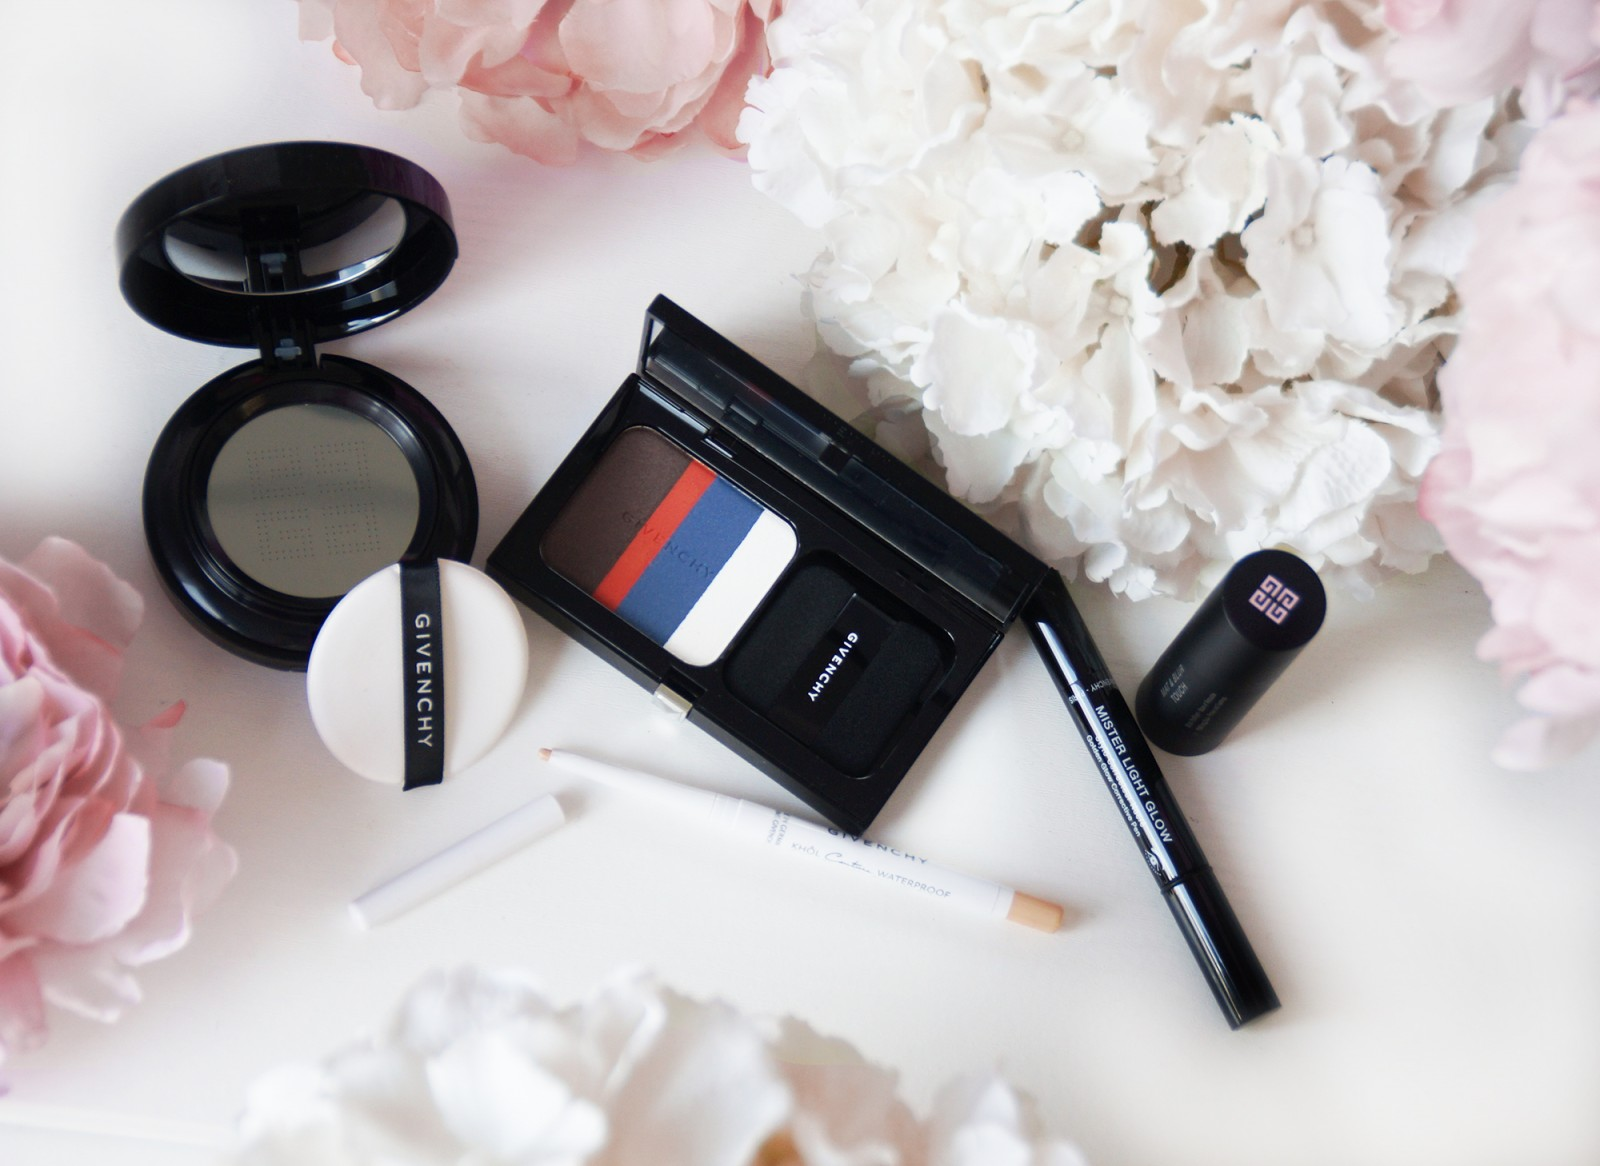 printemps 2018 maquillage givenchy